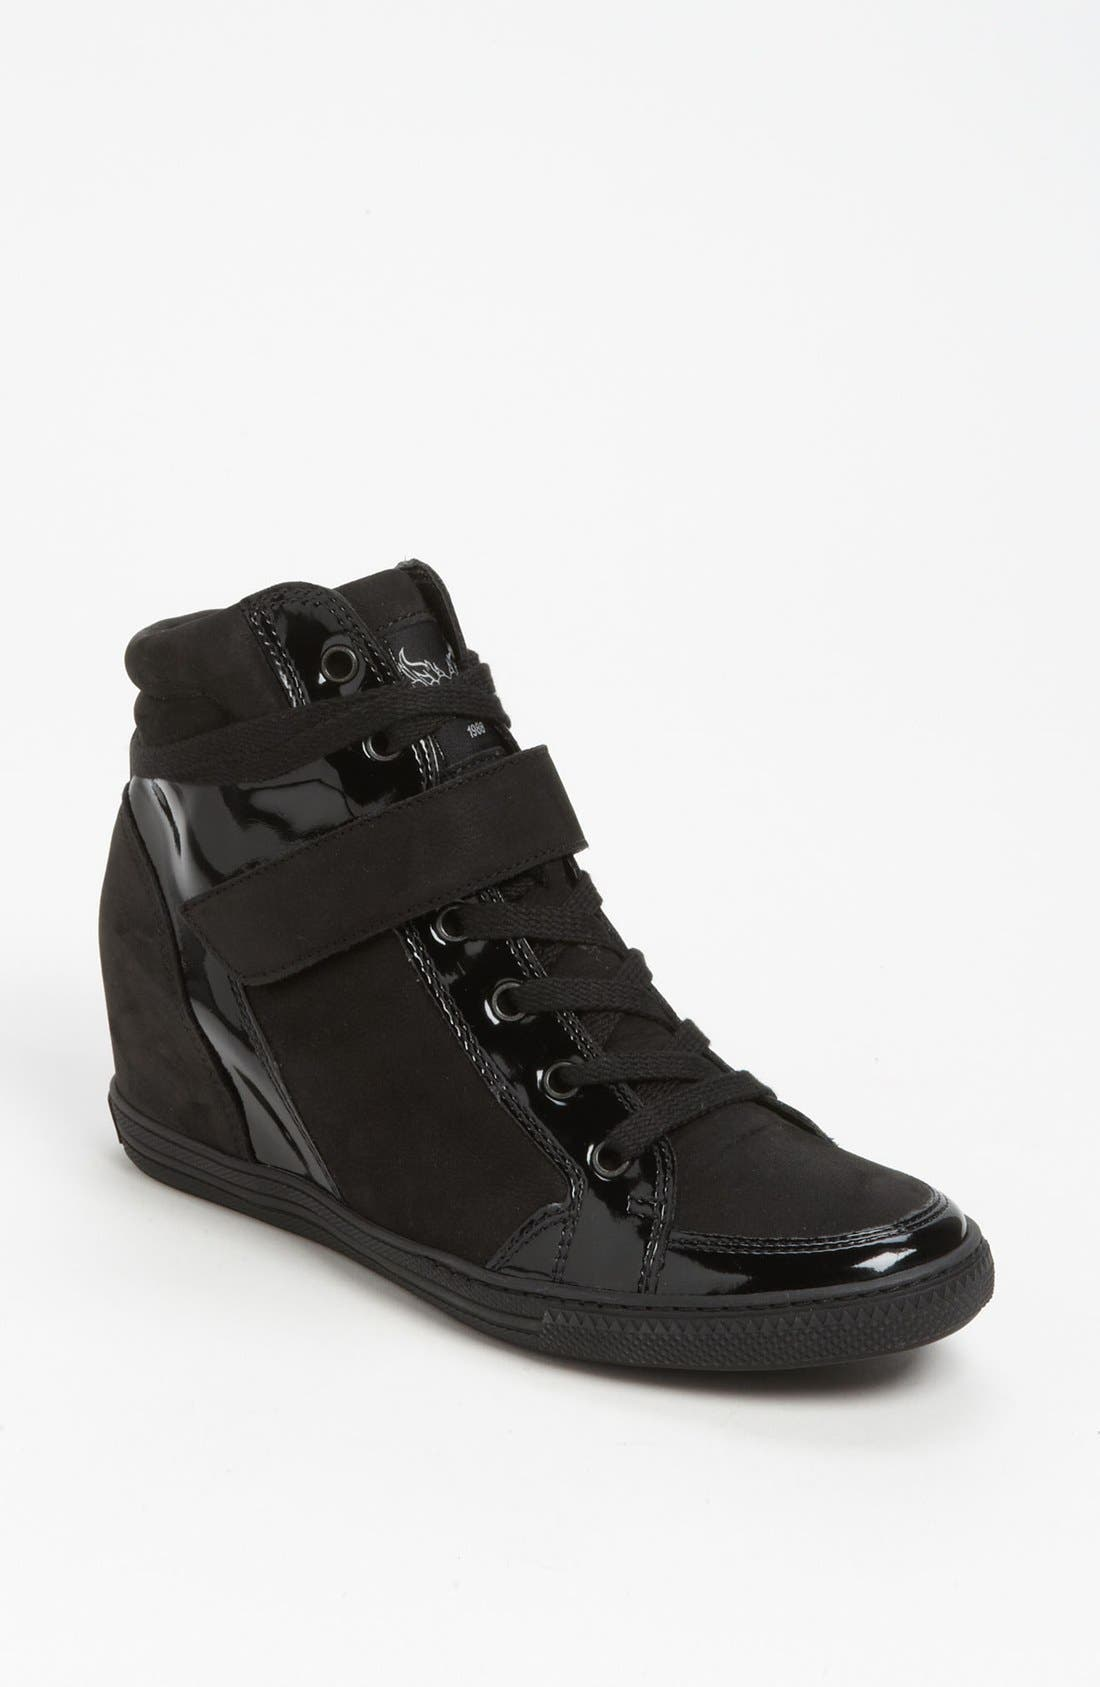 Main Image - Paul Green 'Paris' Hidden Wedge Sneaker